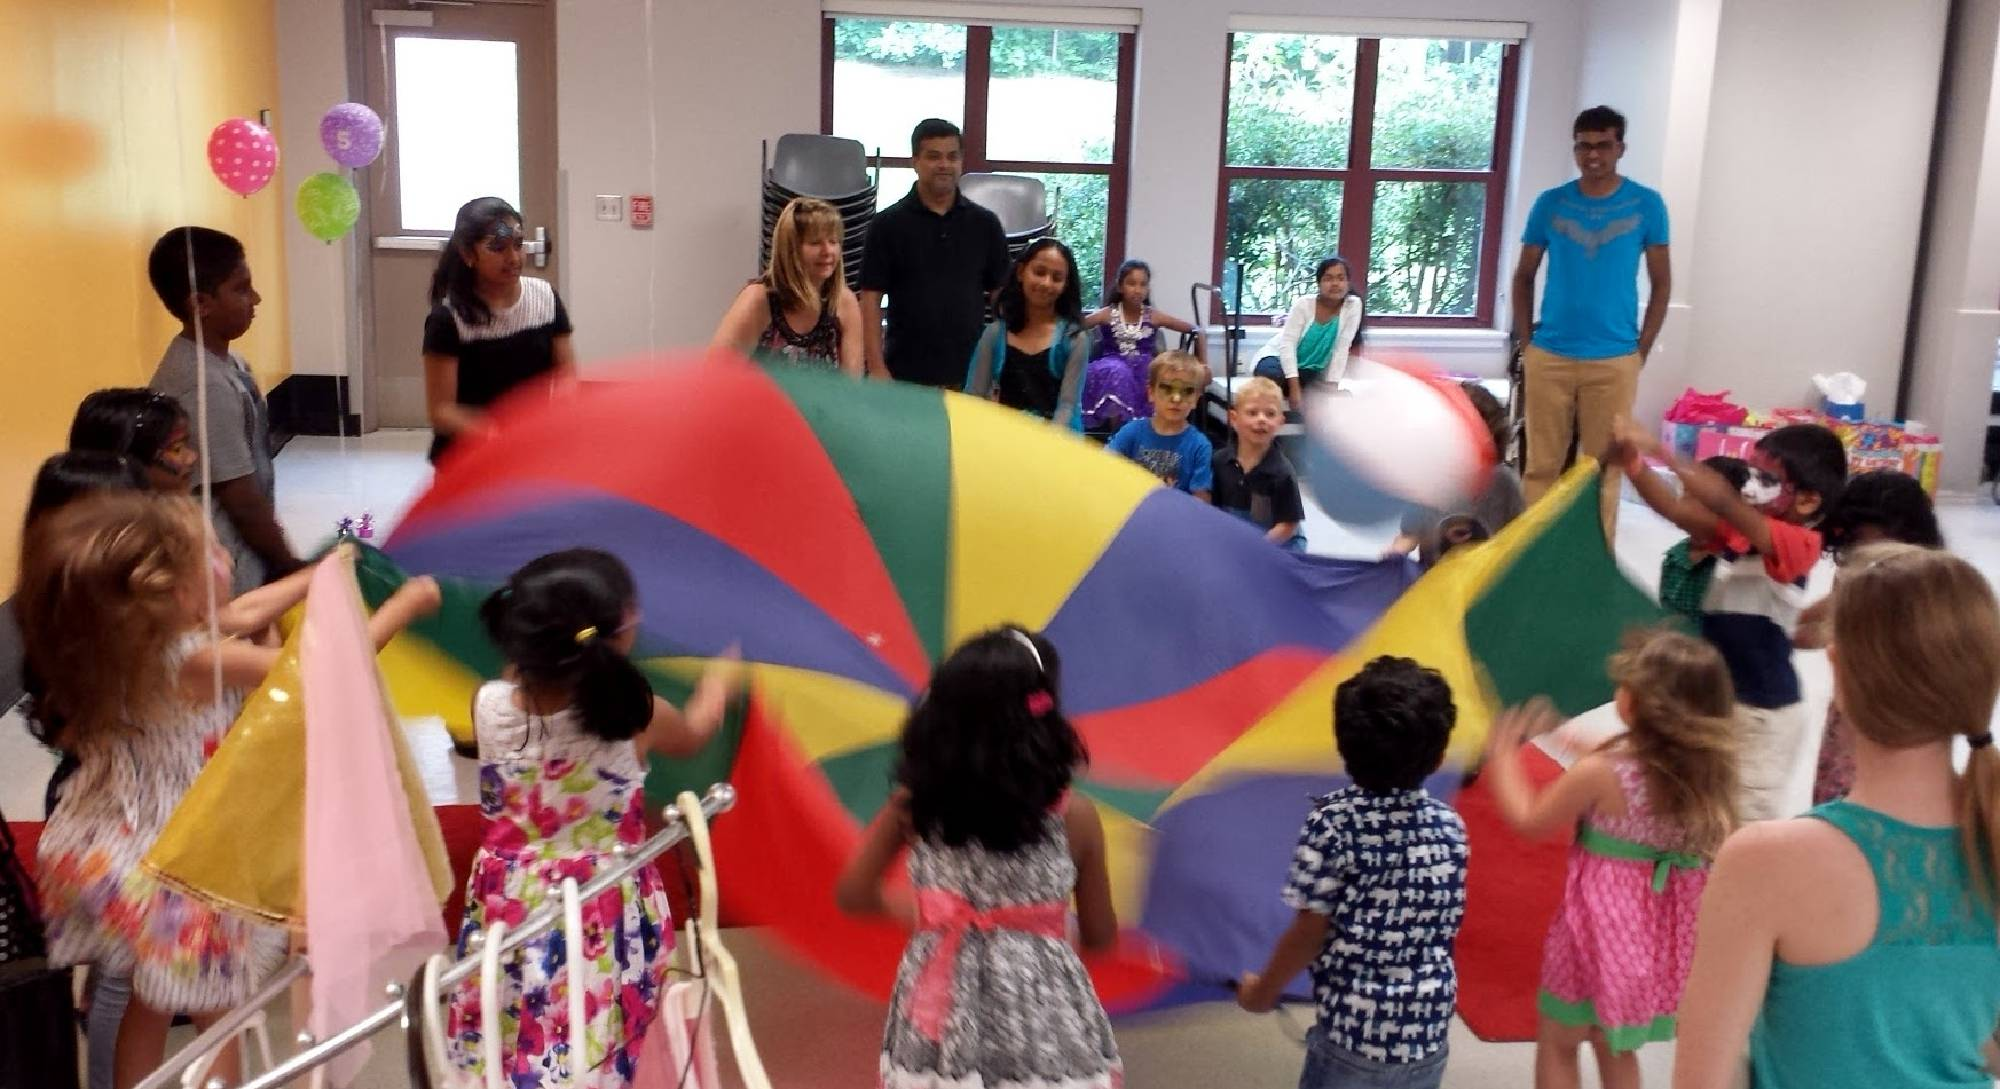 Parachute and games at the Apex Community Center